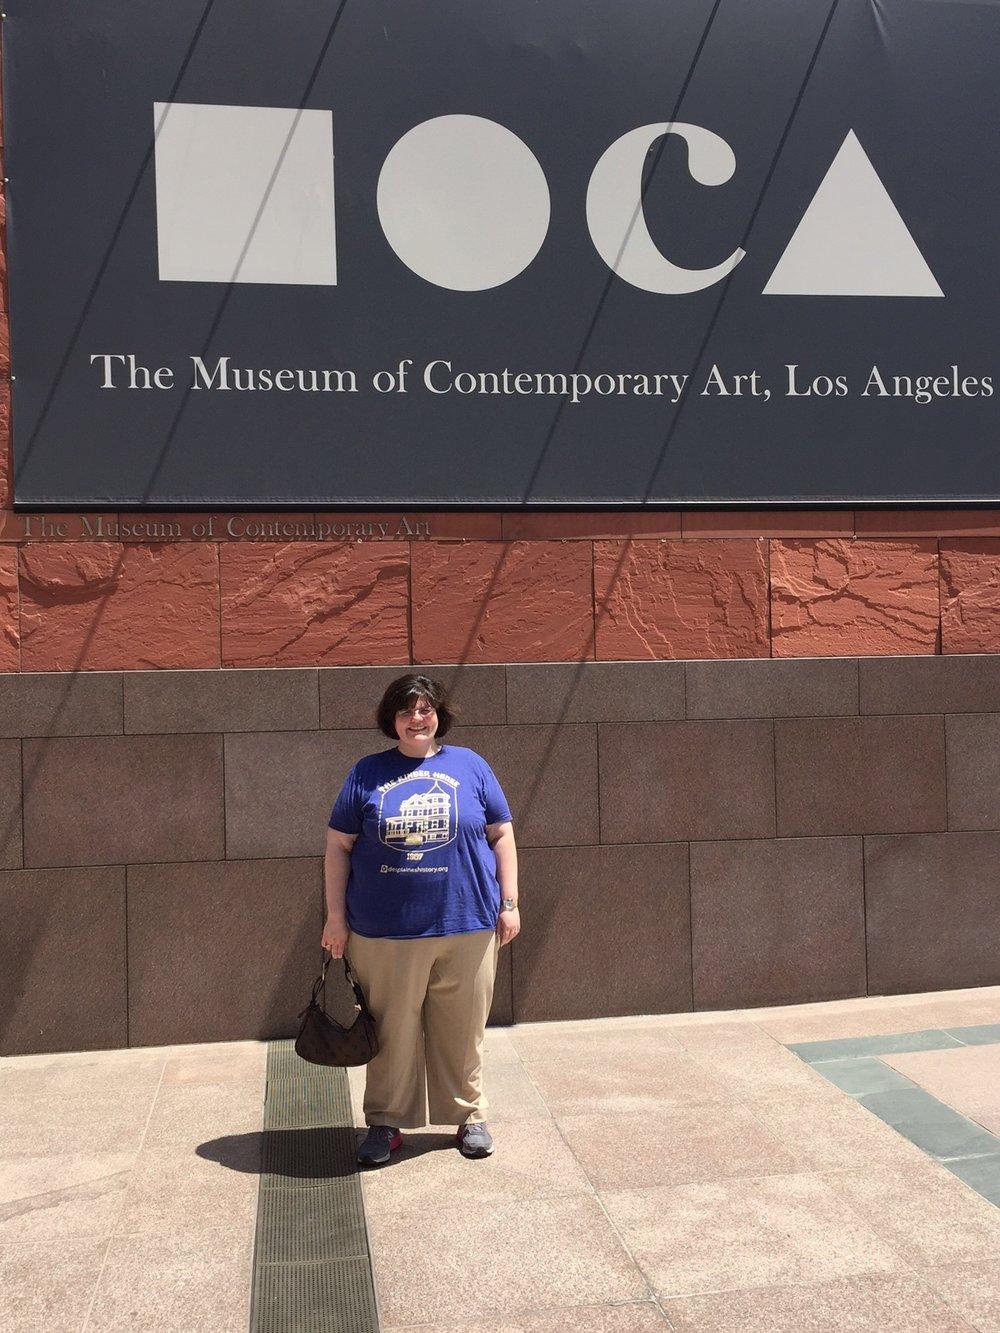 Des Plaines History Center employee Rachel Birkner visits Los Angeles to see some great art. She proudly dons her Kinder House tee shirt! August 13, 2017.